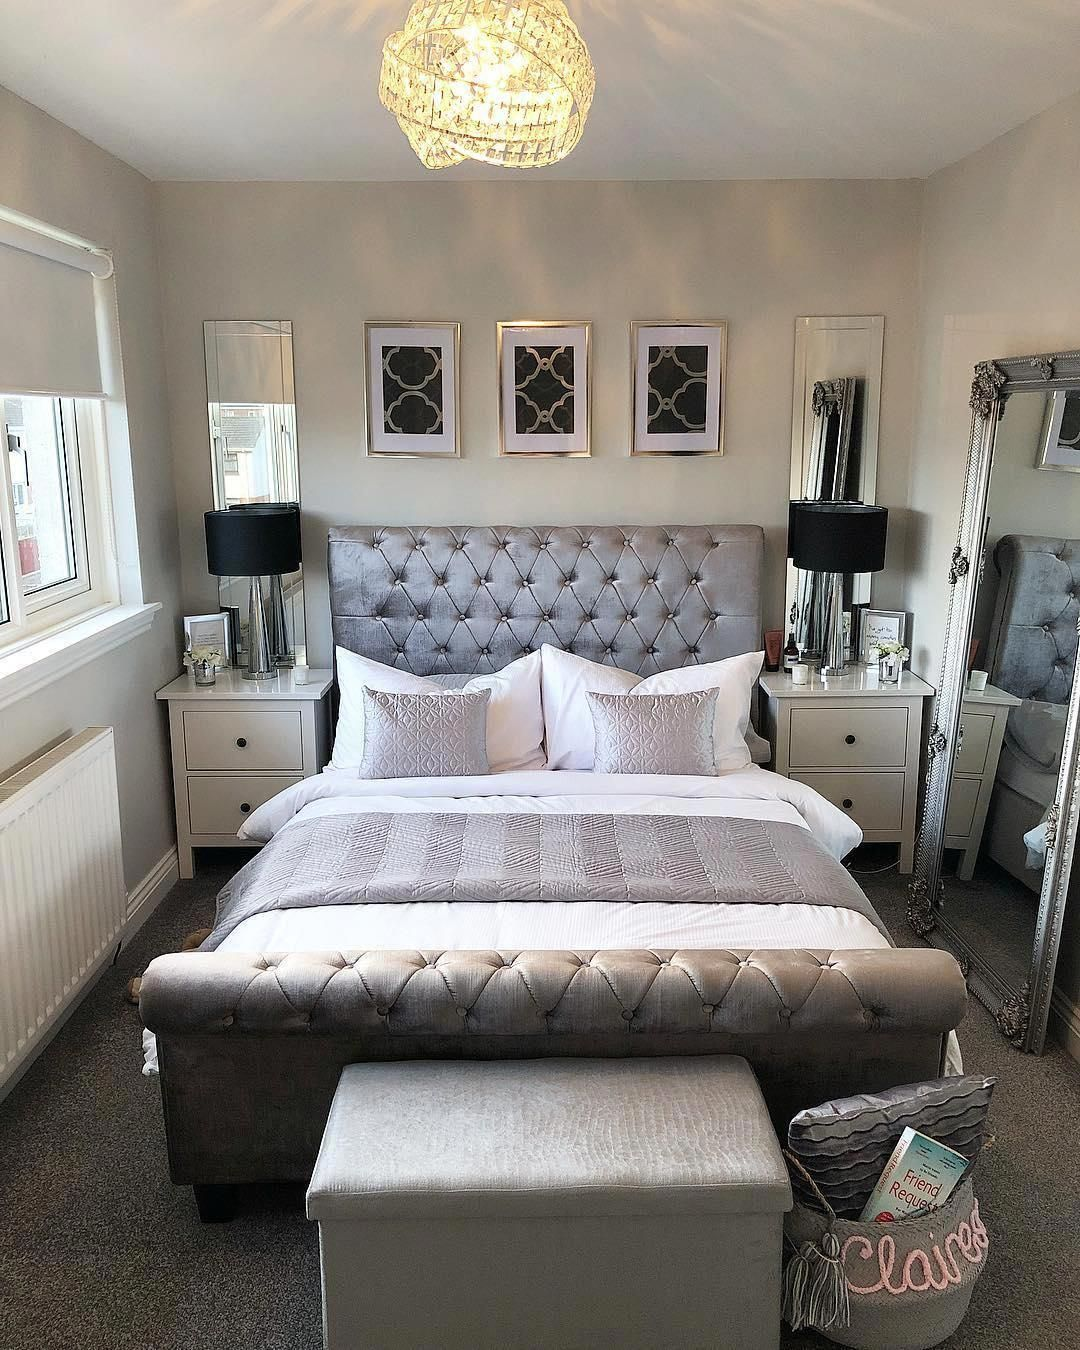 41 Gorgeous Grey Bedroom Designs for Extraordinary Place to Sleep  #bed #bedroom #homedecor #grayBedroom #graybedroomwithpopofcolor 41 Gorgeous Grey Bedroom Designs for Extraordinary Place to Sleep  #bed #bedroom #homedecor #grayBedroom #graybedroomwithpopofcolor